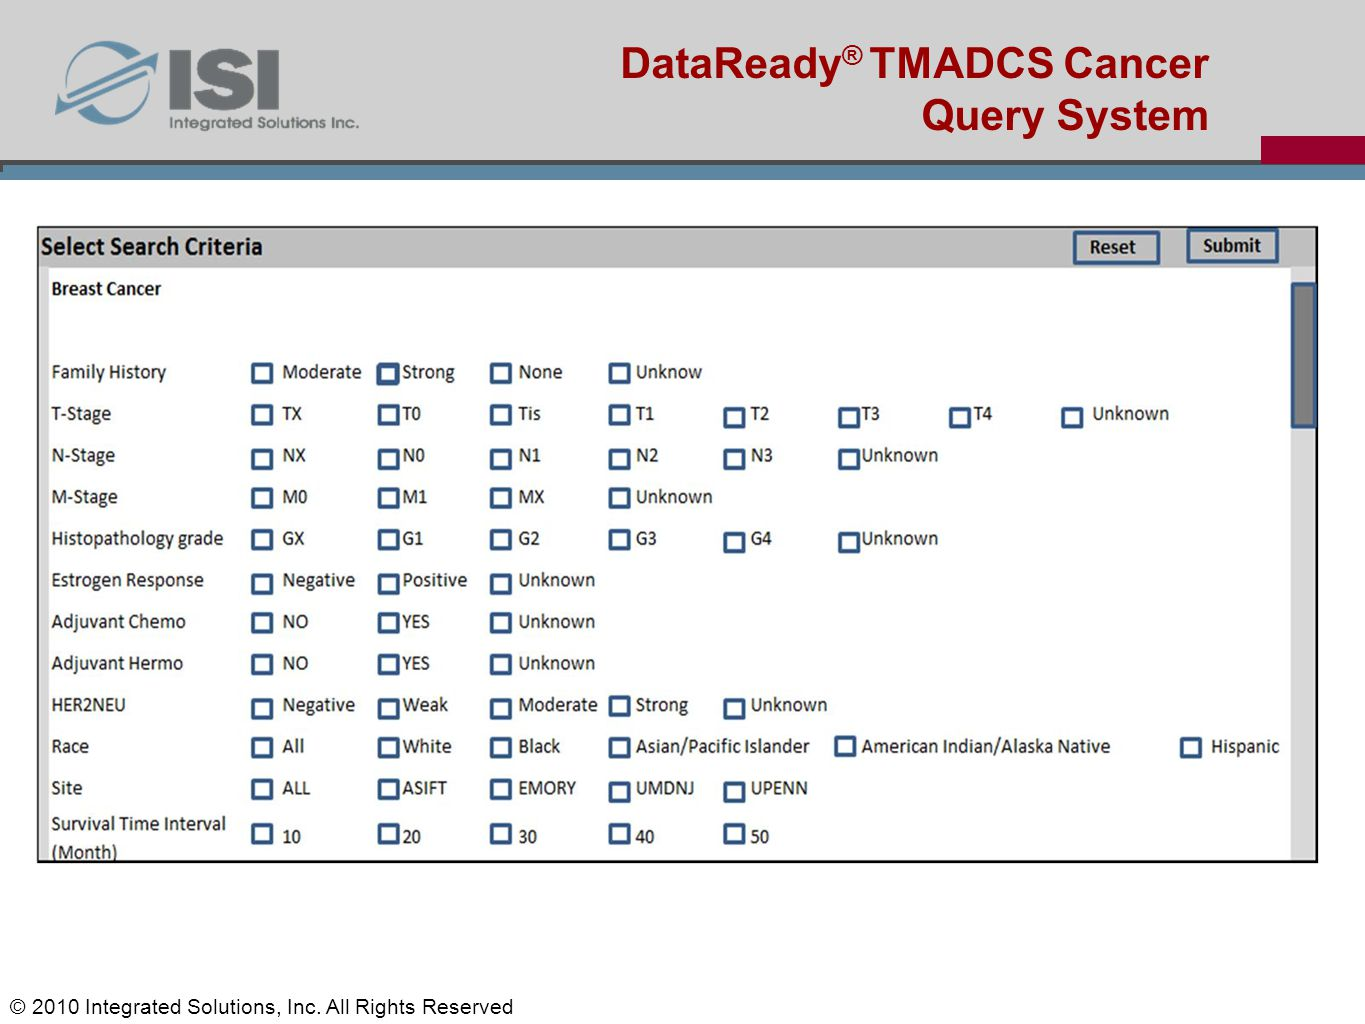 Jun-Min Liu's Status report DataReady ® TMADCS Cancer Query System © 2010 Integrated Solutions, Inc. All Rights Reserved